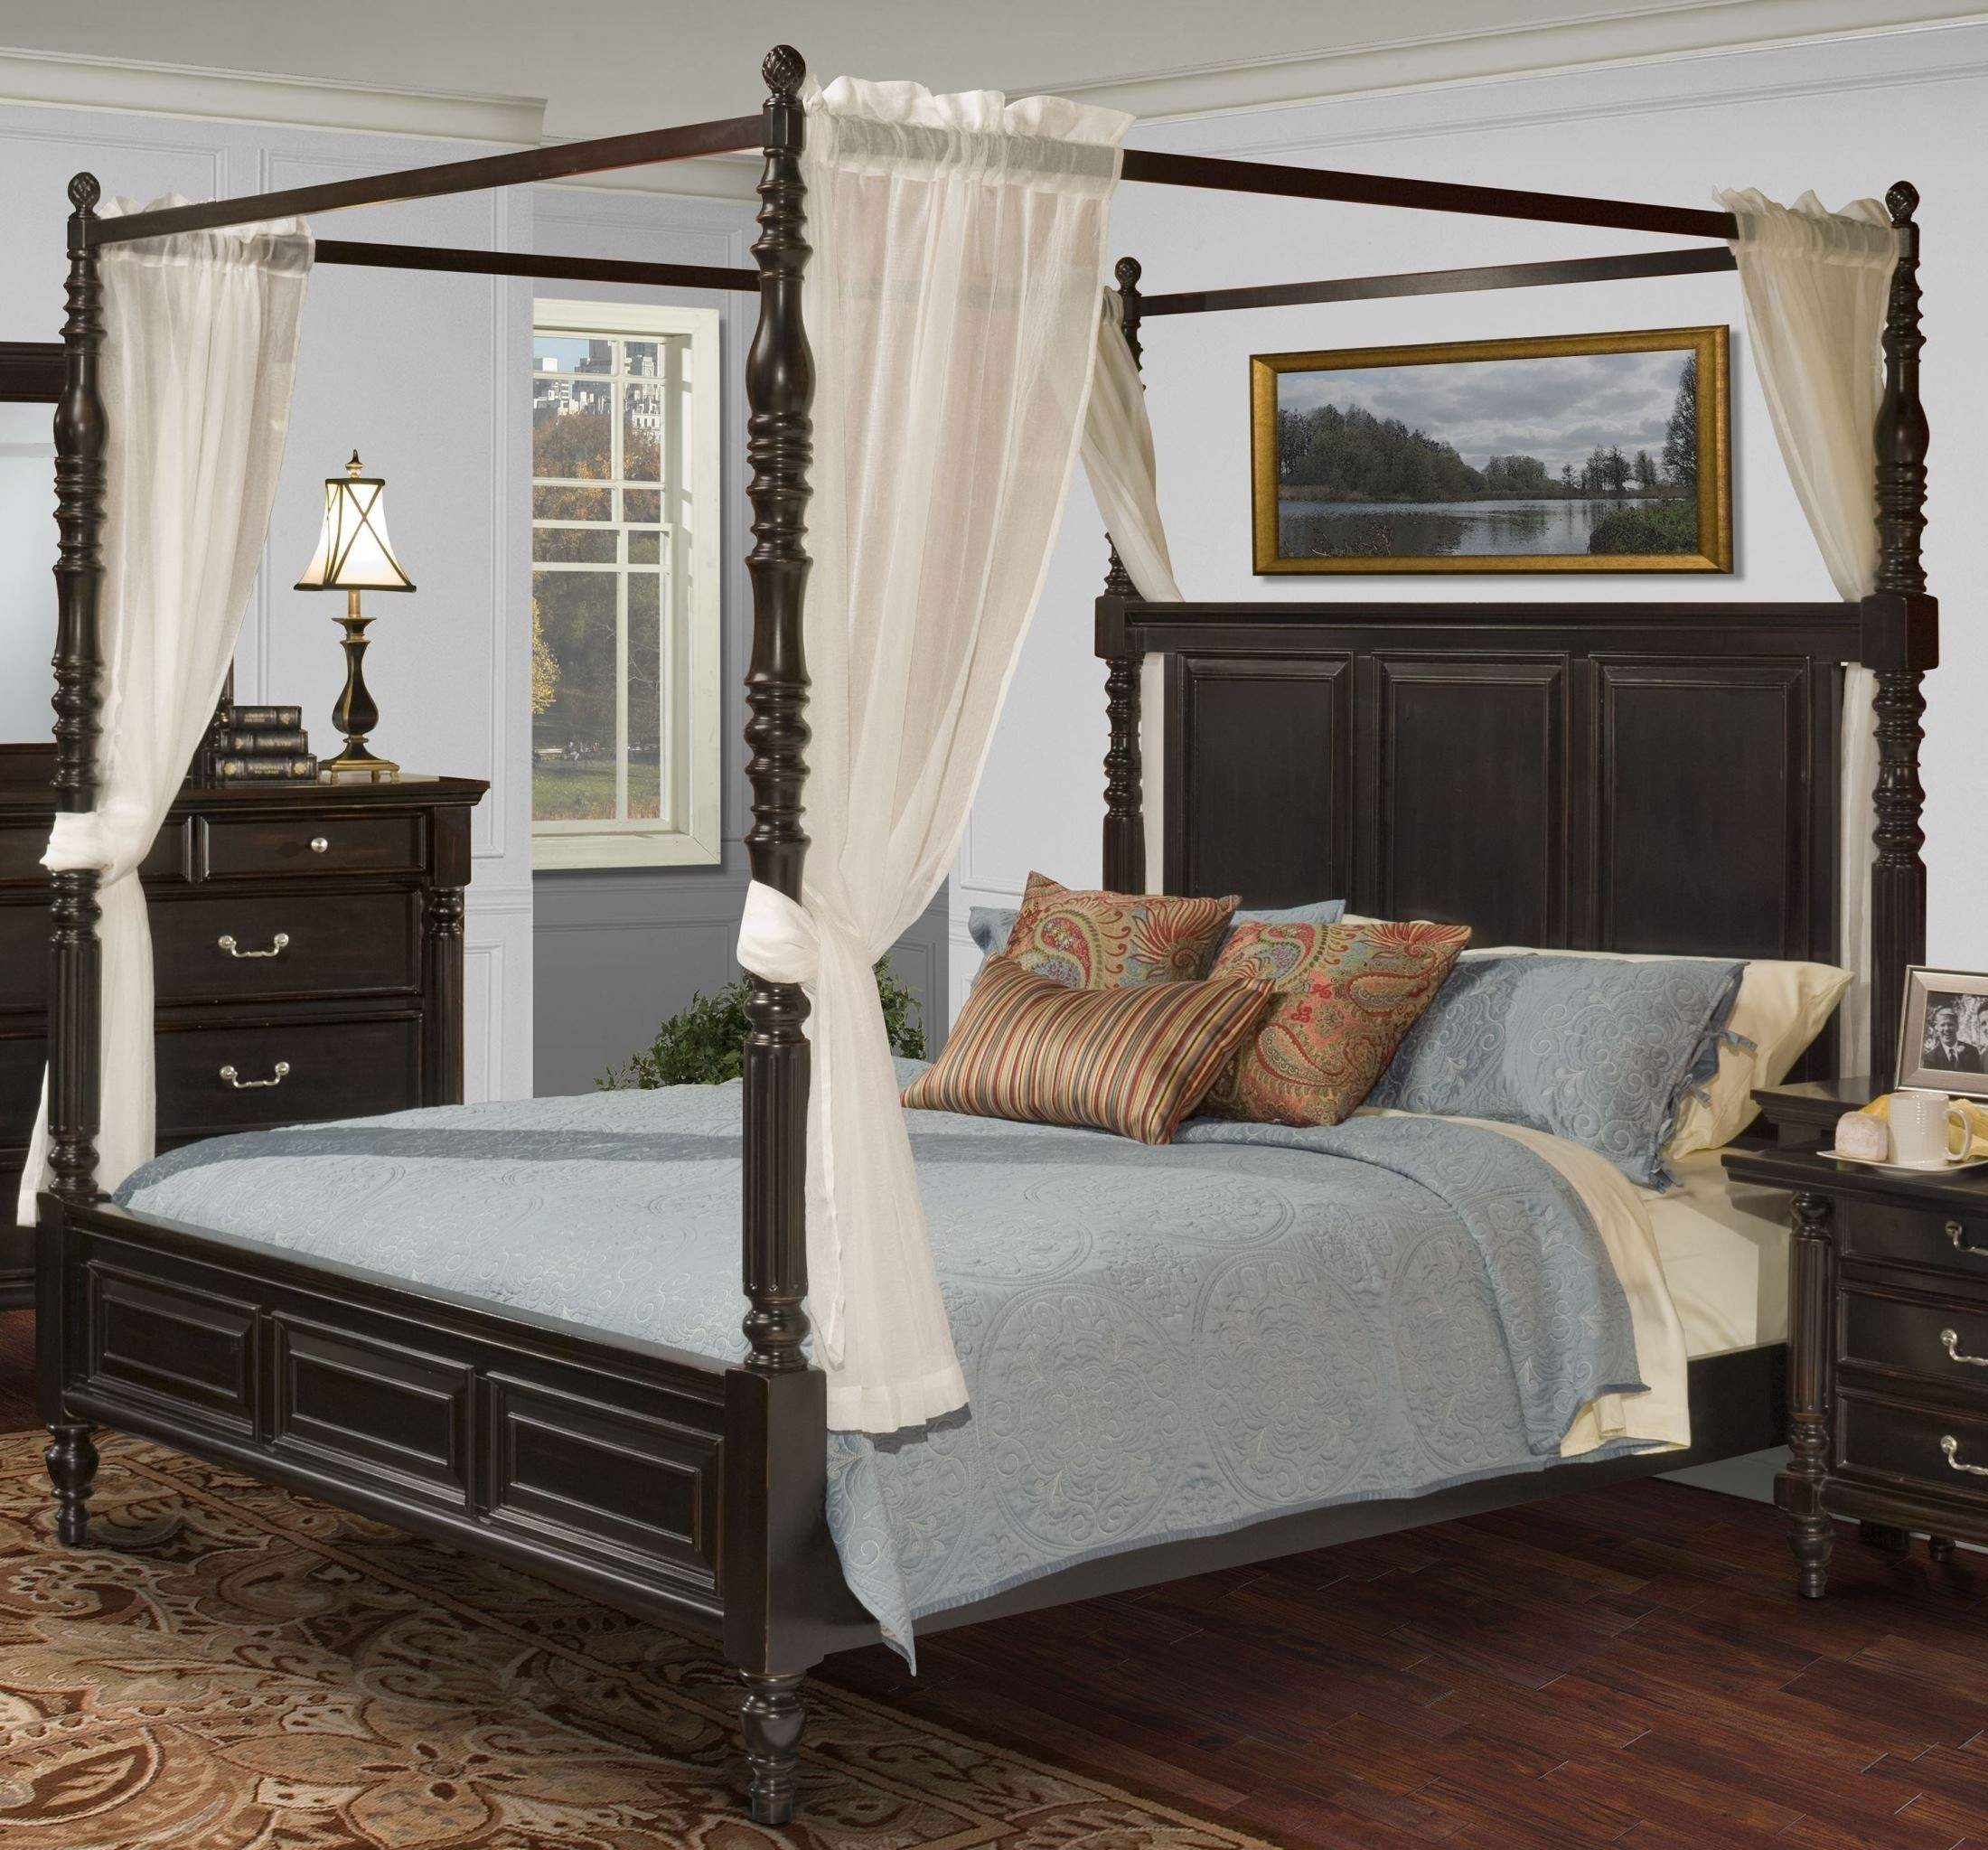 Queen Canopy Bed: Martinique Rubbed Black Queen Canopy Bed With Drapes From